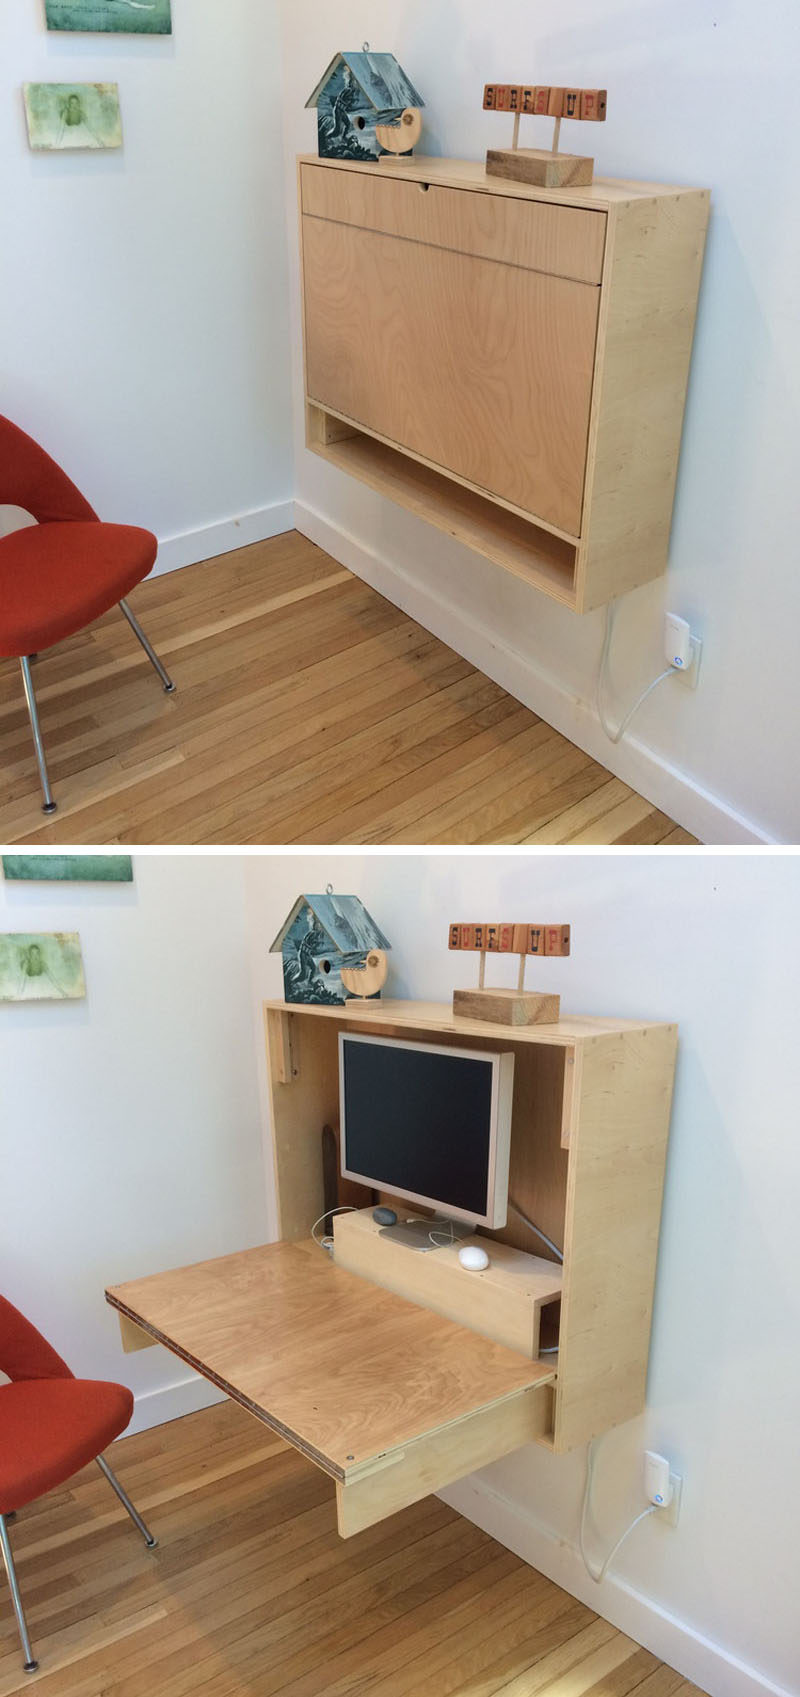 Wall Desk If you're feeling ambitious, you can also make your own custom folding XEVENVS